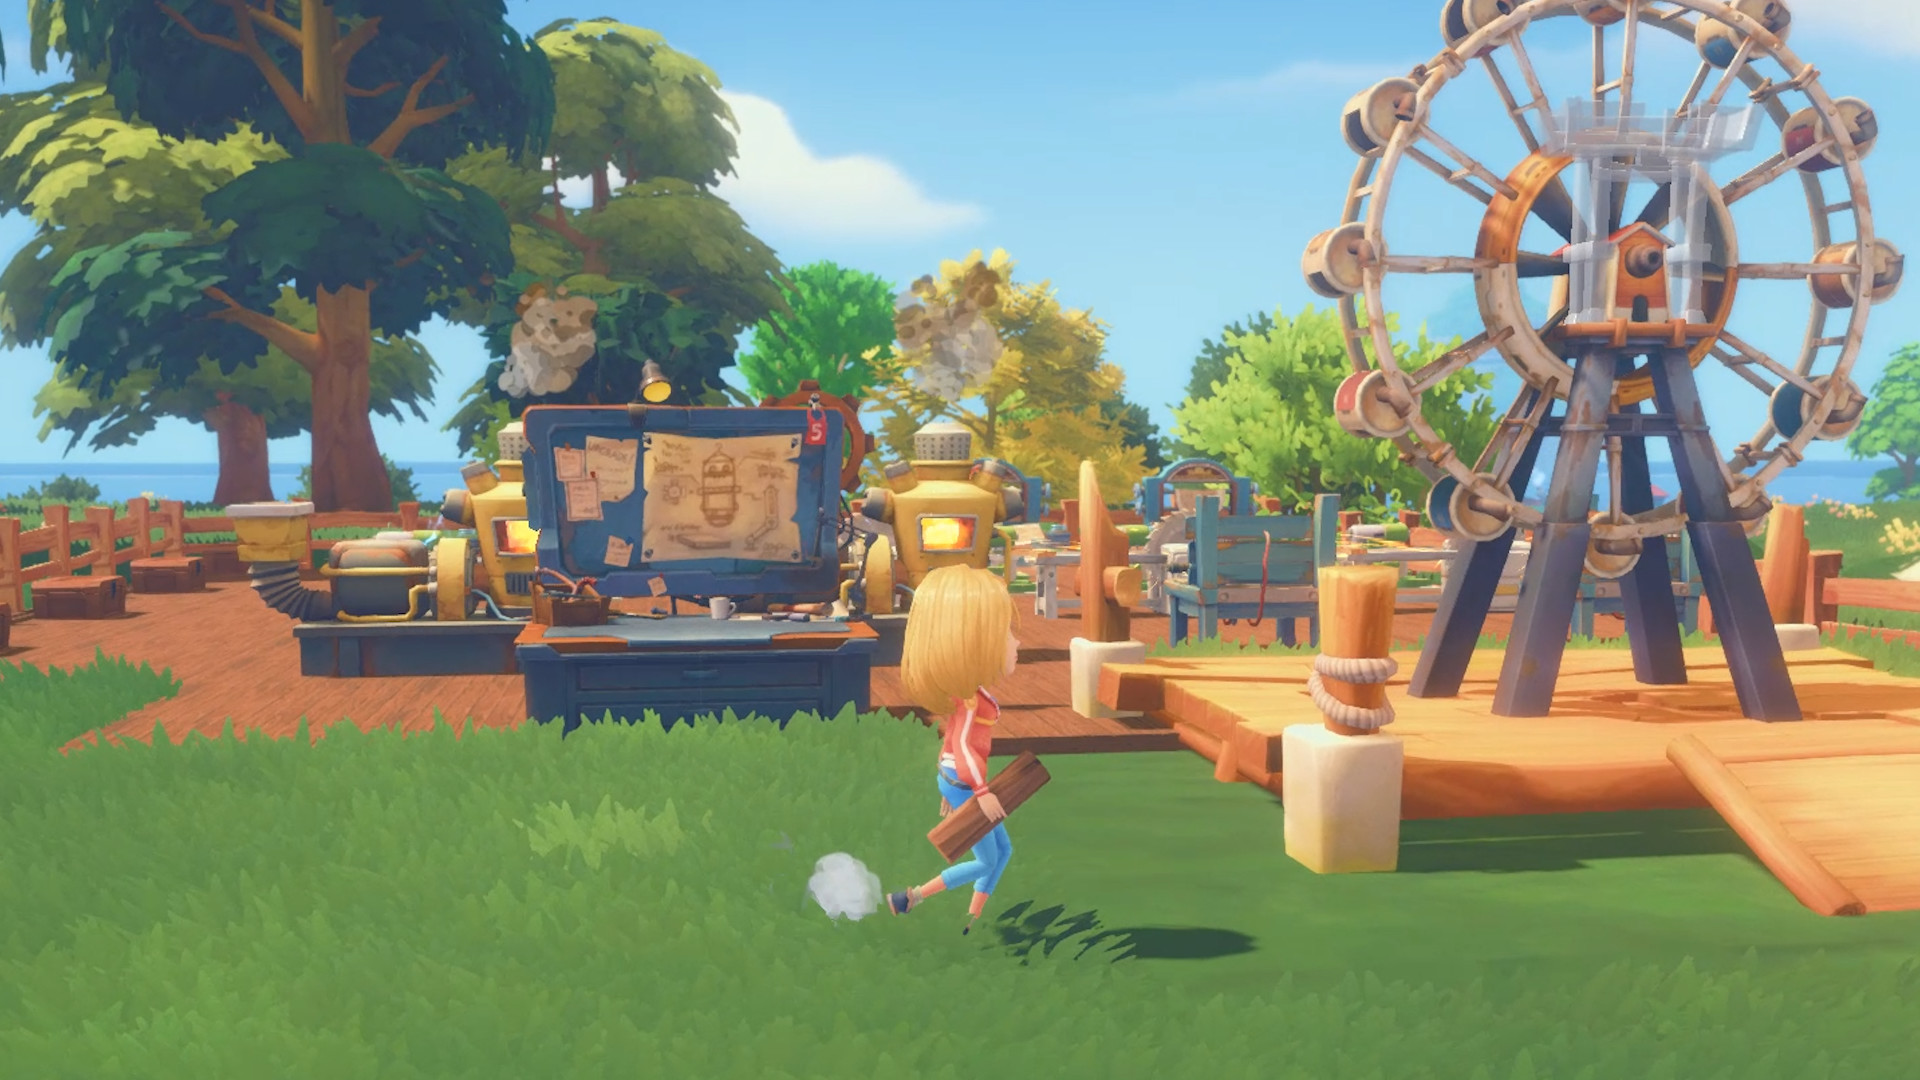 My Time At Portia heading to consoles in April